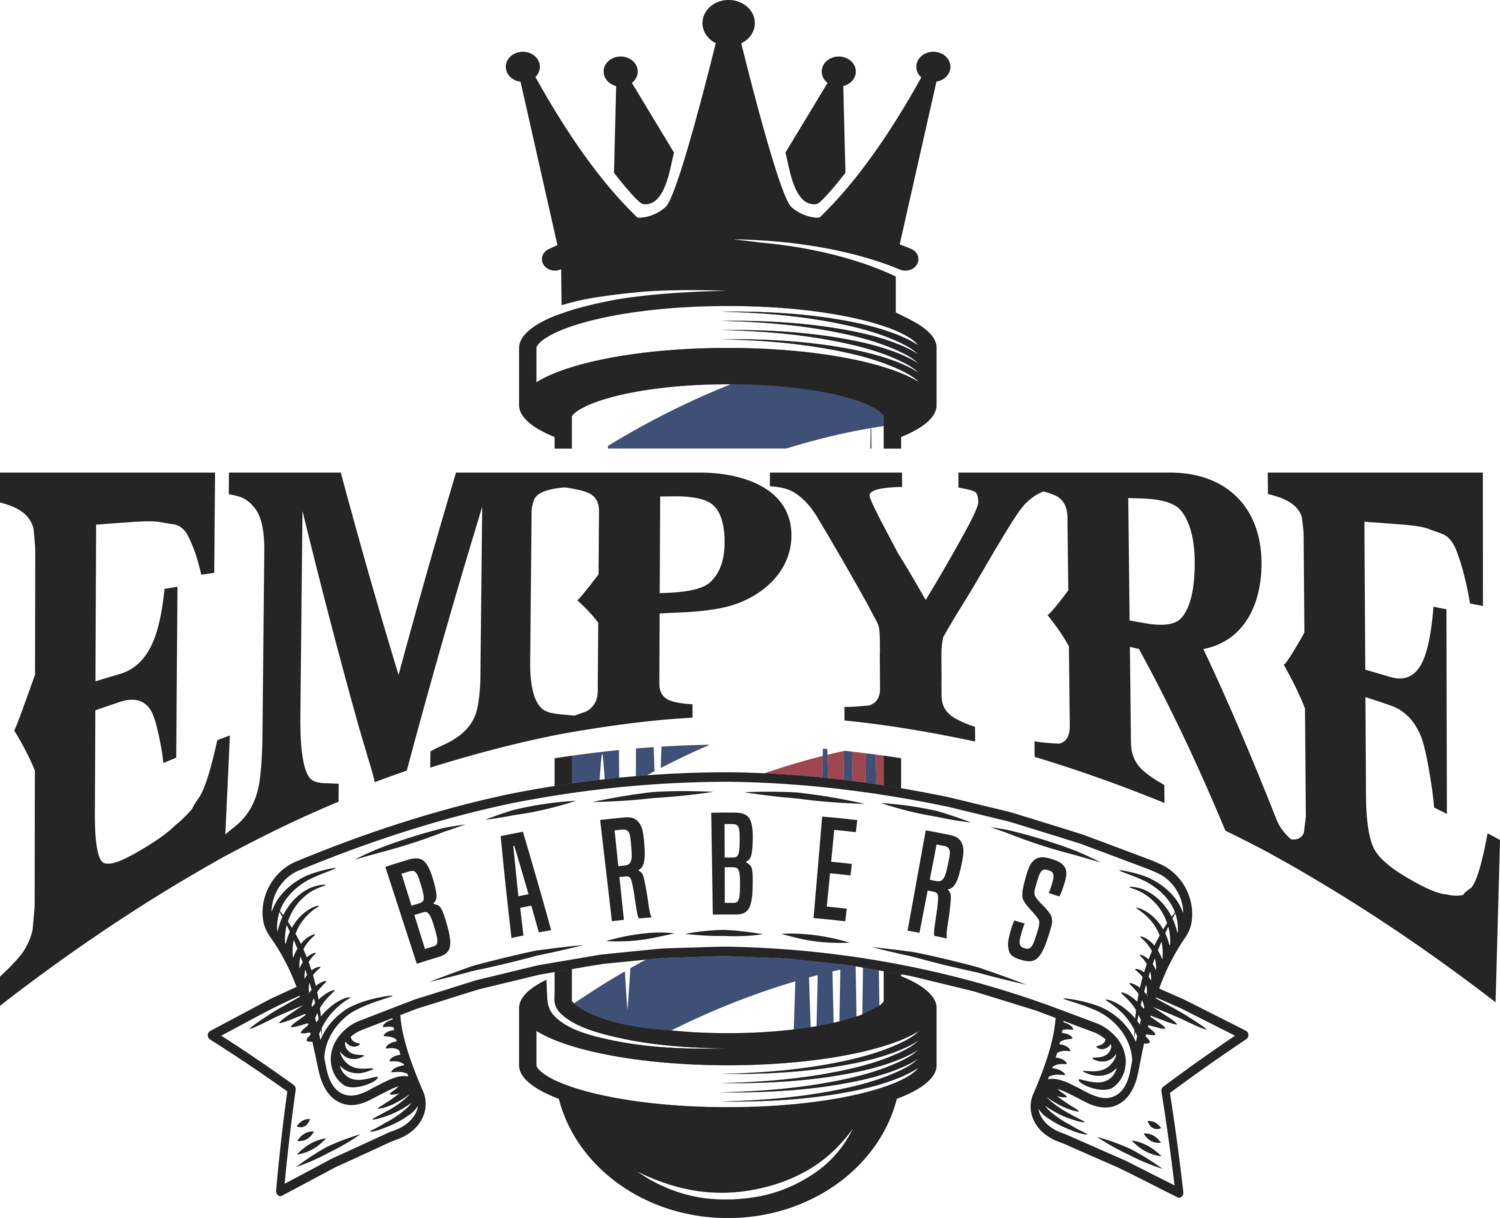 Empyre Barbers